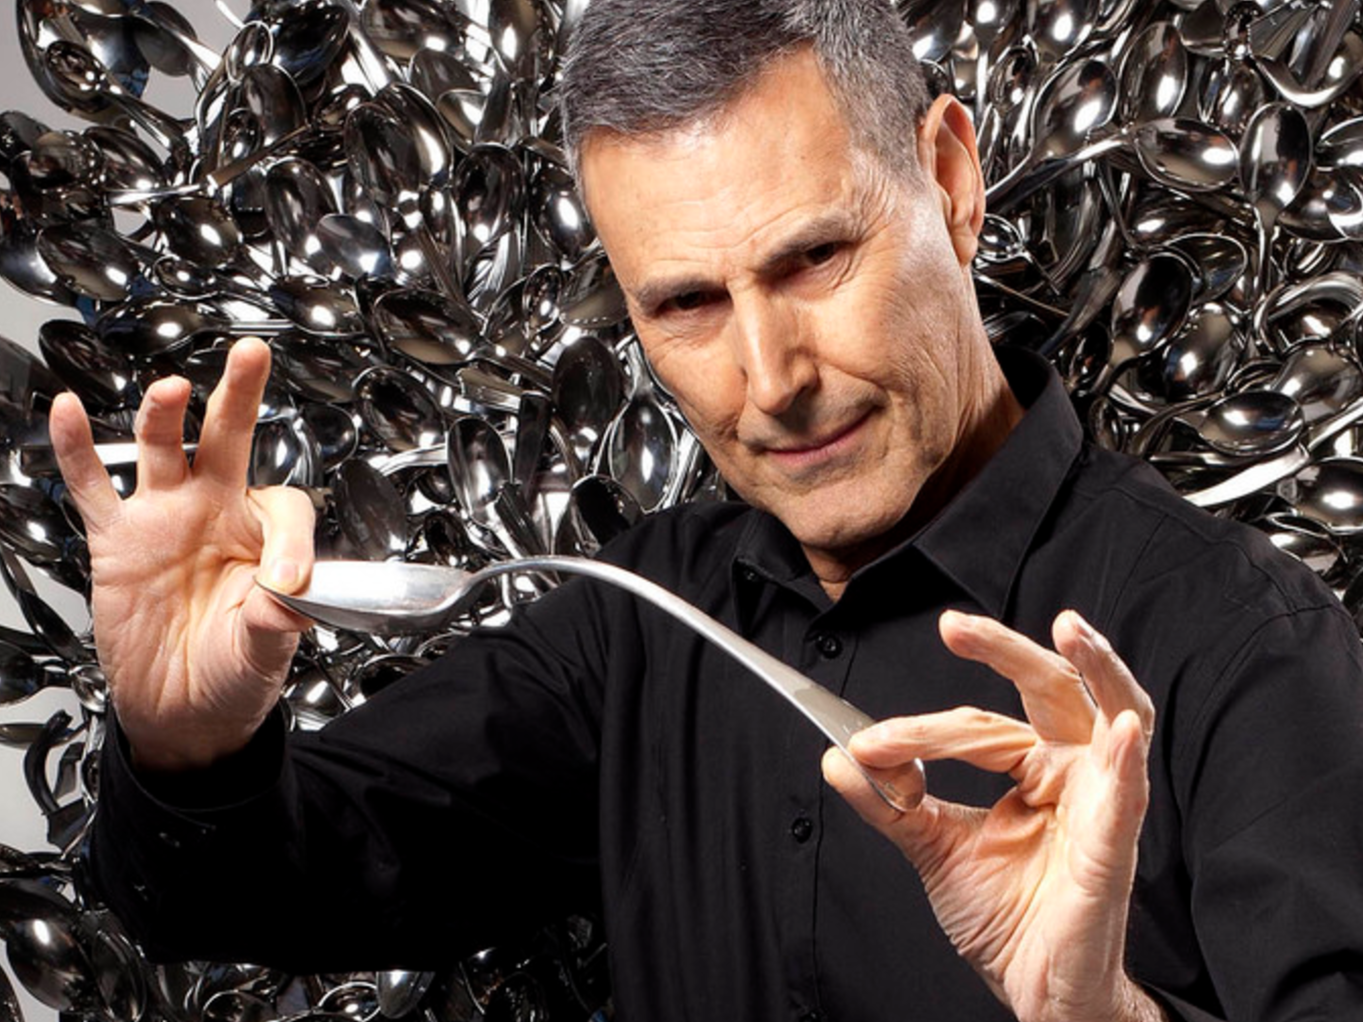 Uri Geller Convinced the CIA He Had Paranormal Powers in 1973